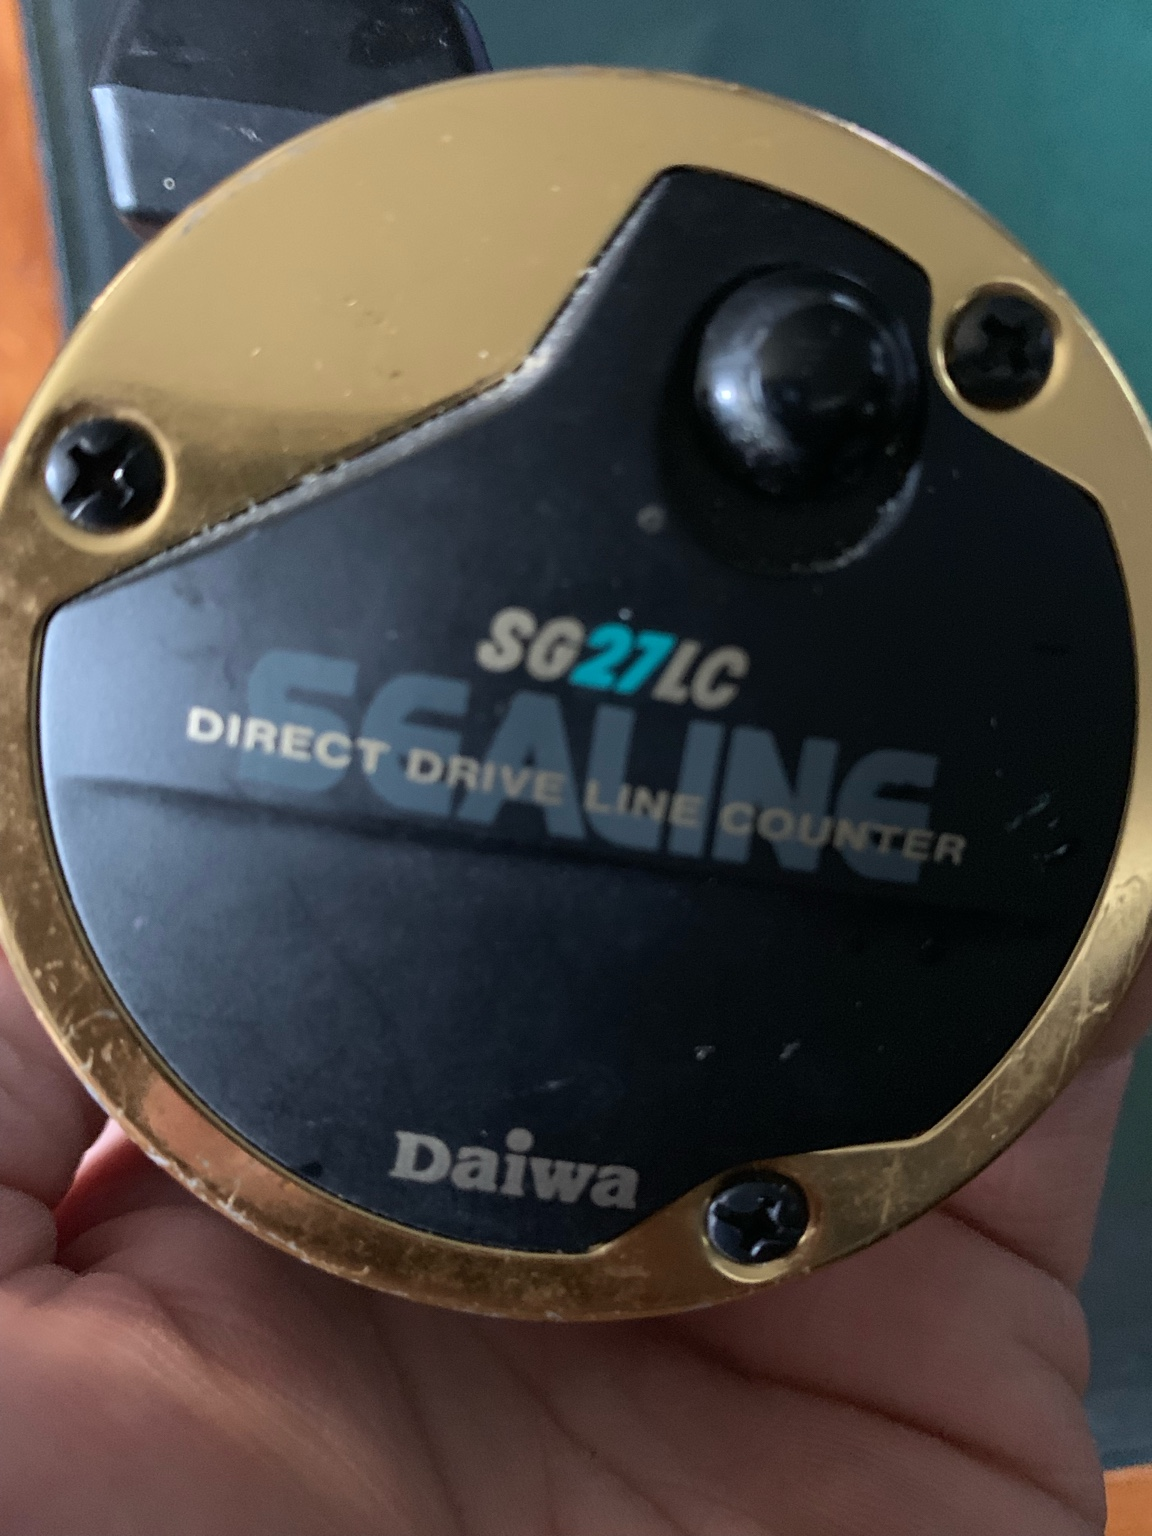 ab6d0d09595 IMG_1554058211.352294.jpg IMG_1554058219.685883.jpg. Looking for three SG27LC  sea line Daiwa with line counter.